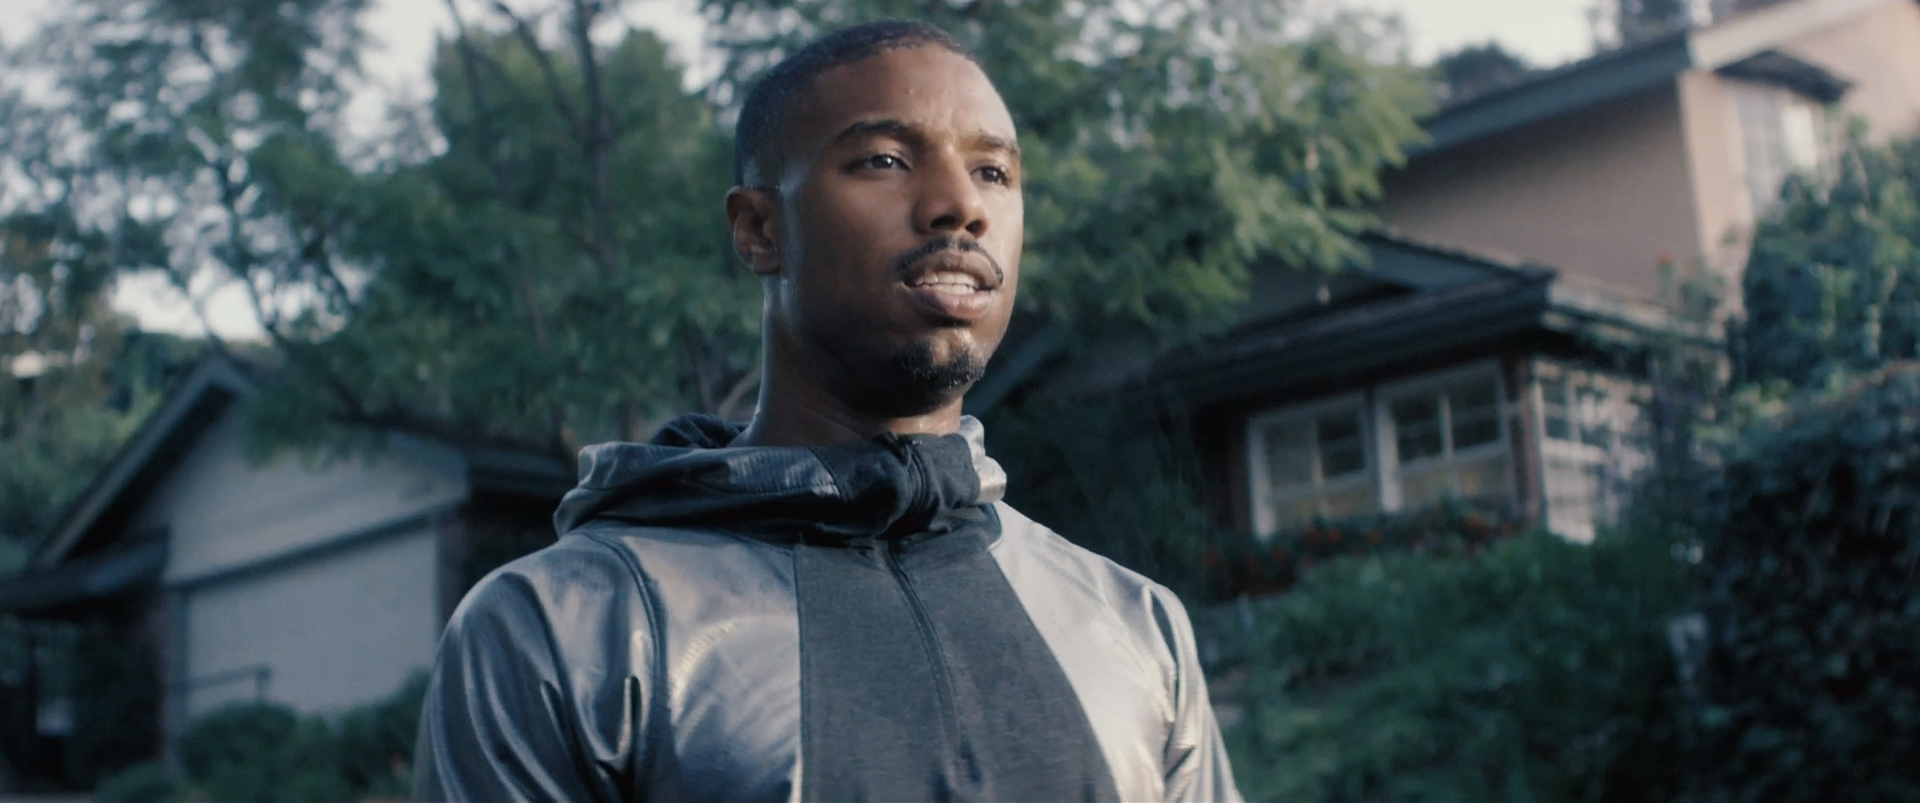 Copy of NIKE | MICHAEL B. JORDAN